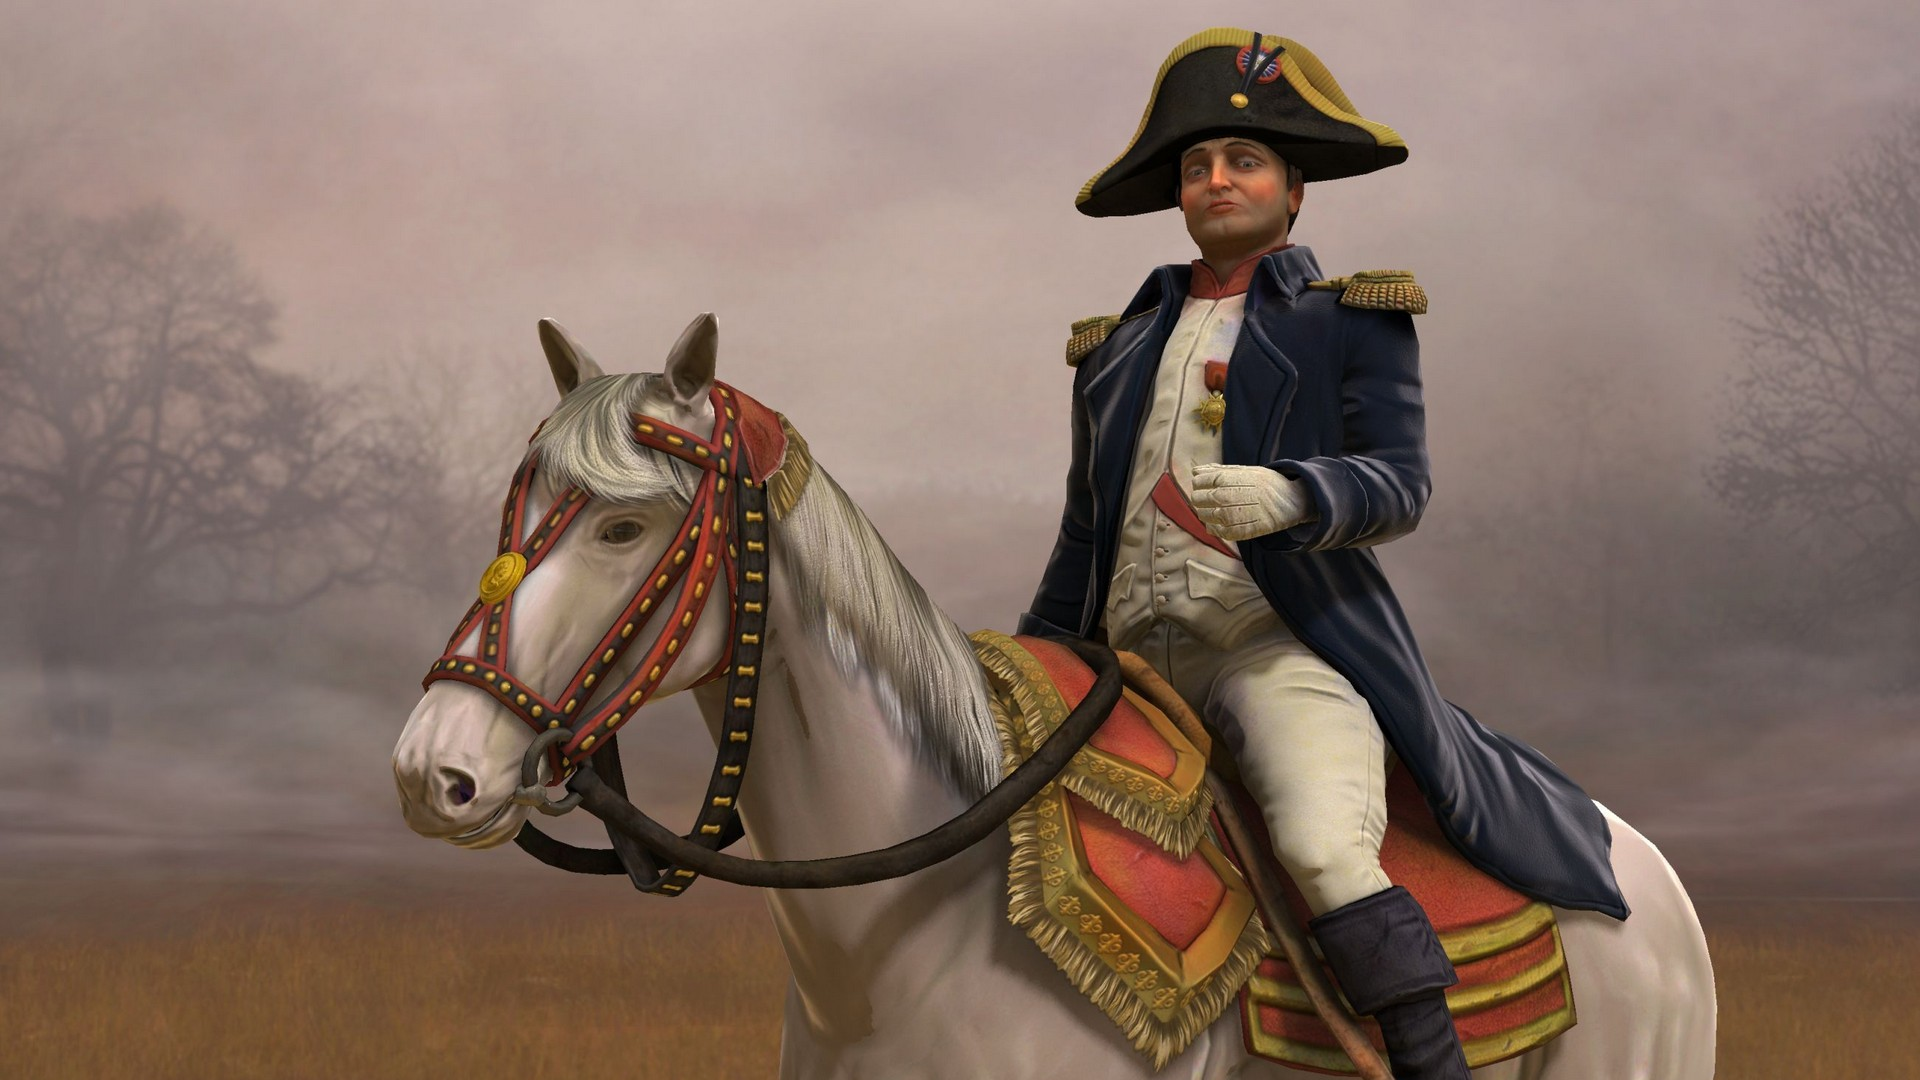 Civilization 5, Napoleon On His Horse Marengo 1920x1080 HD